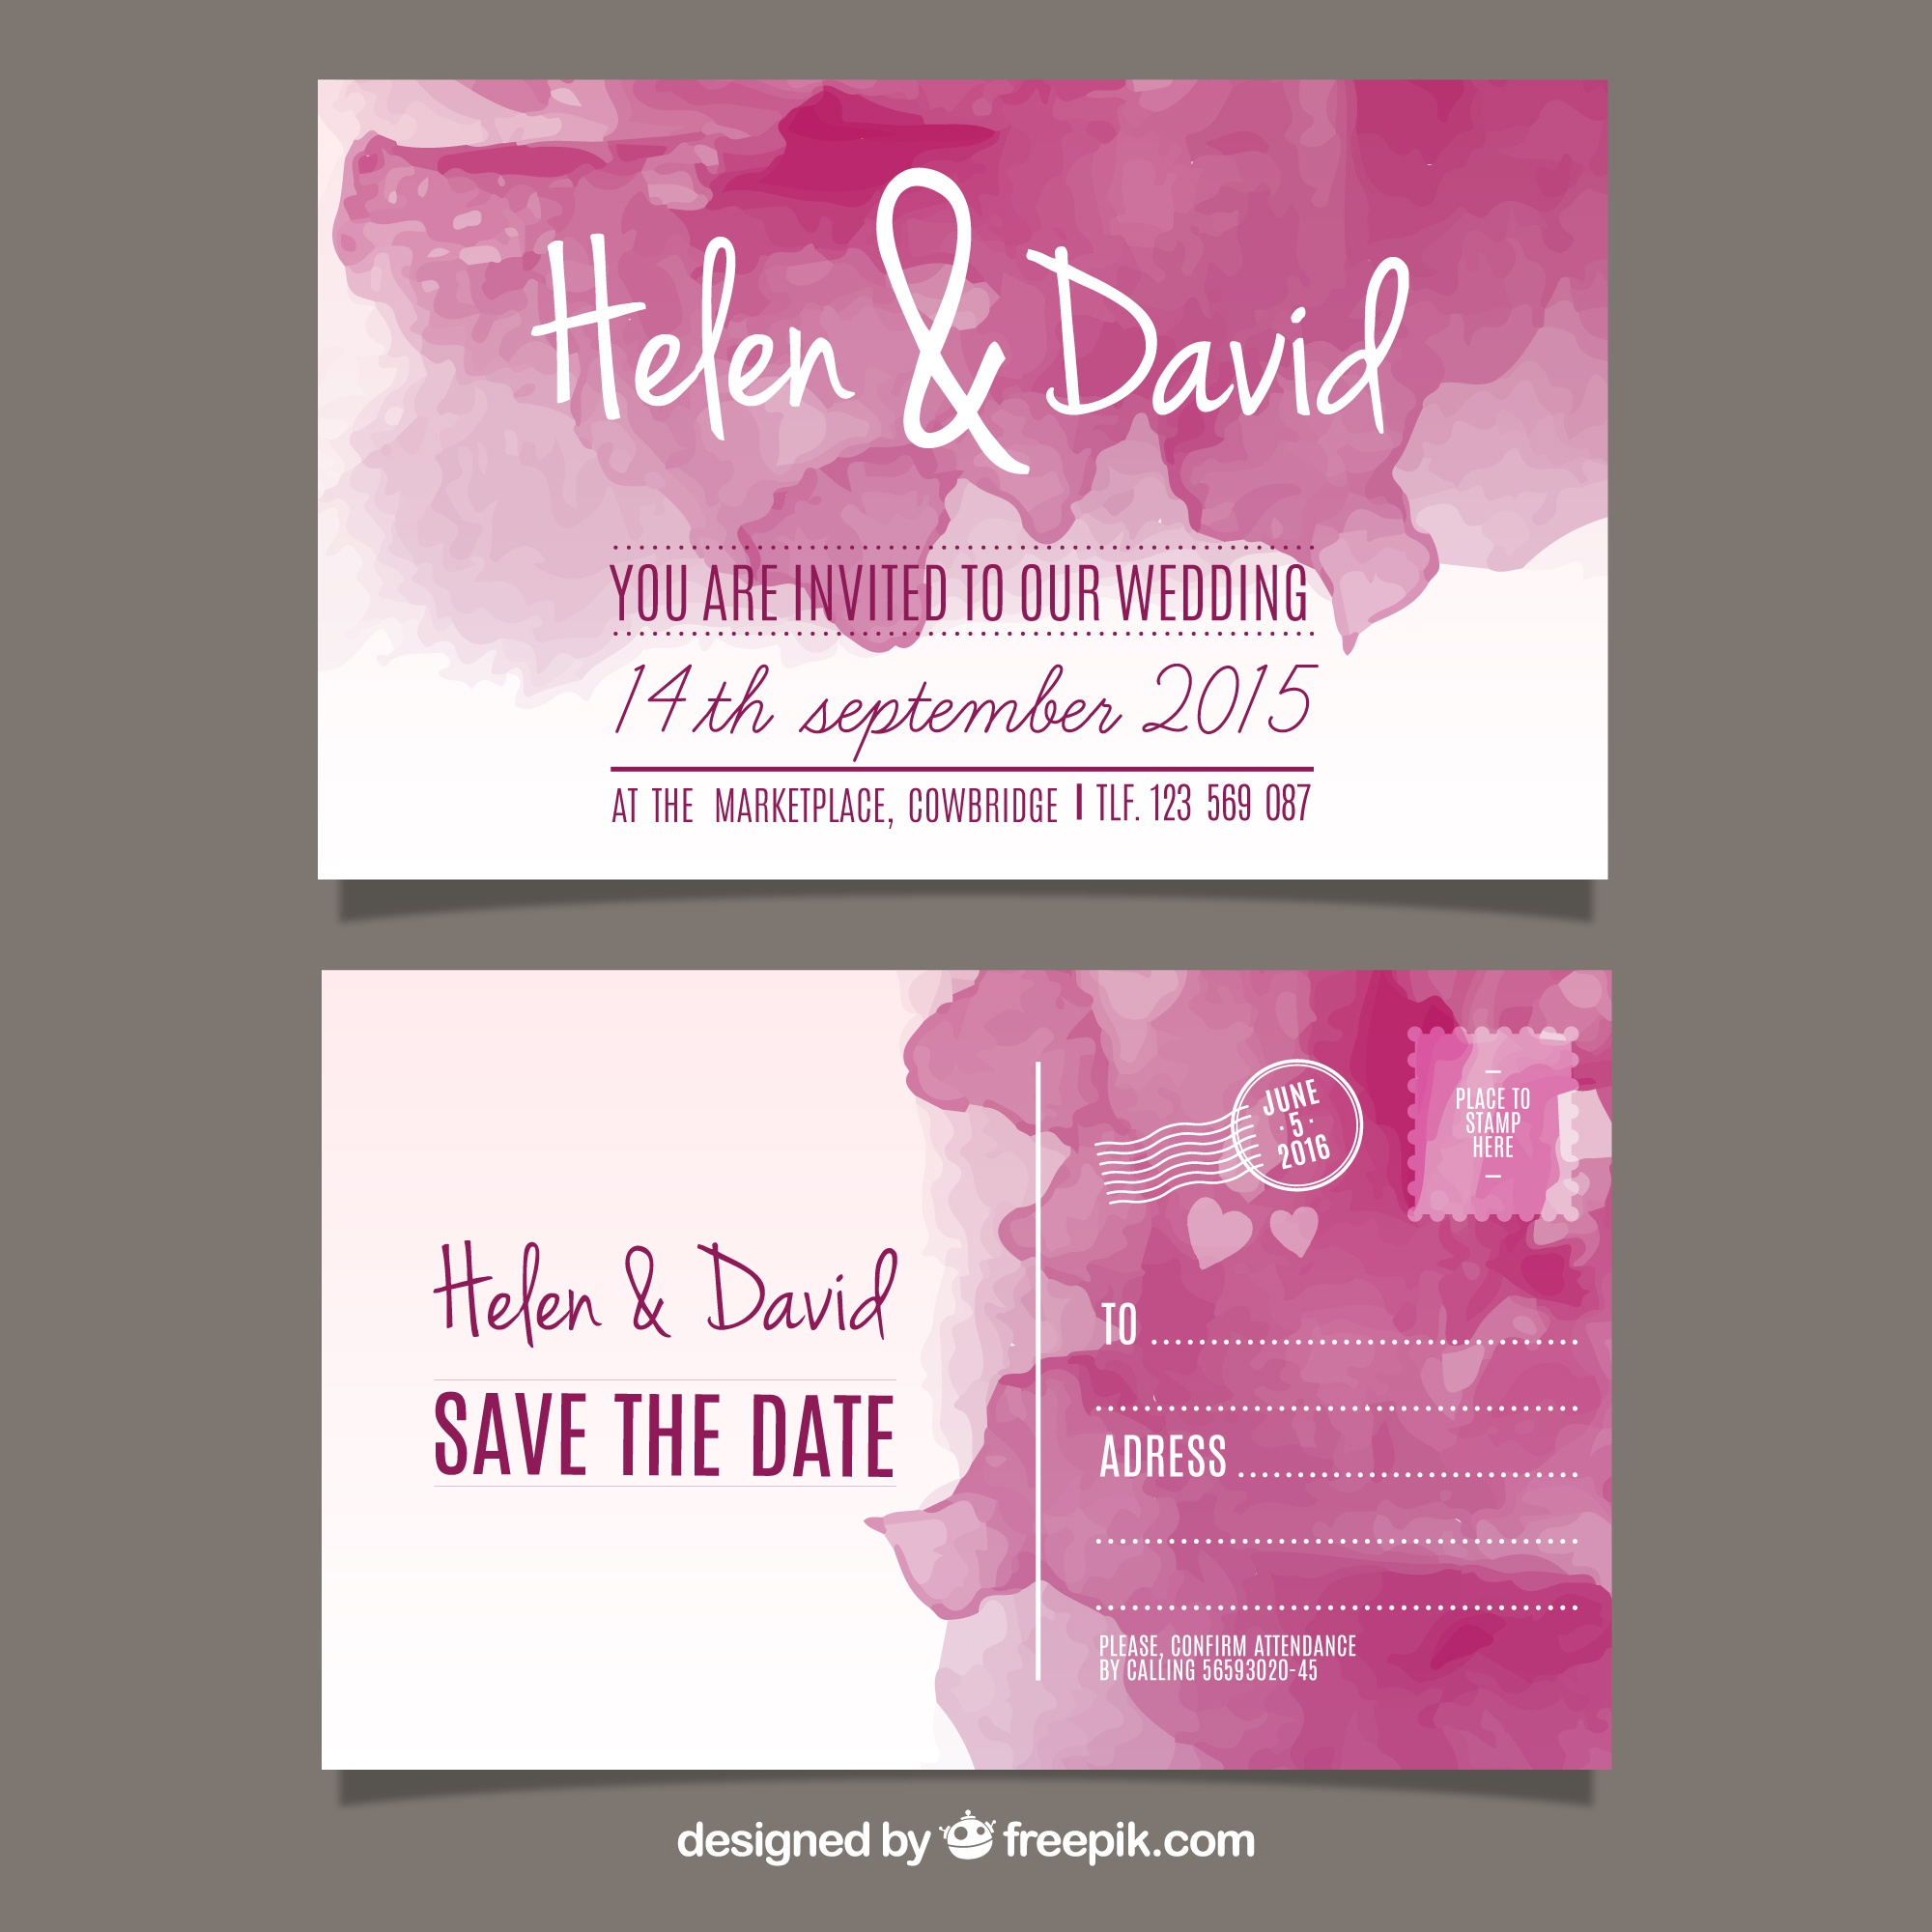 Watercolor wedding invitation in post card style